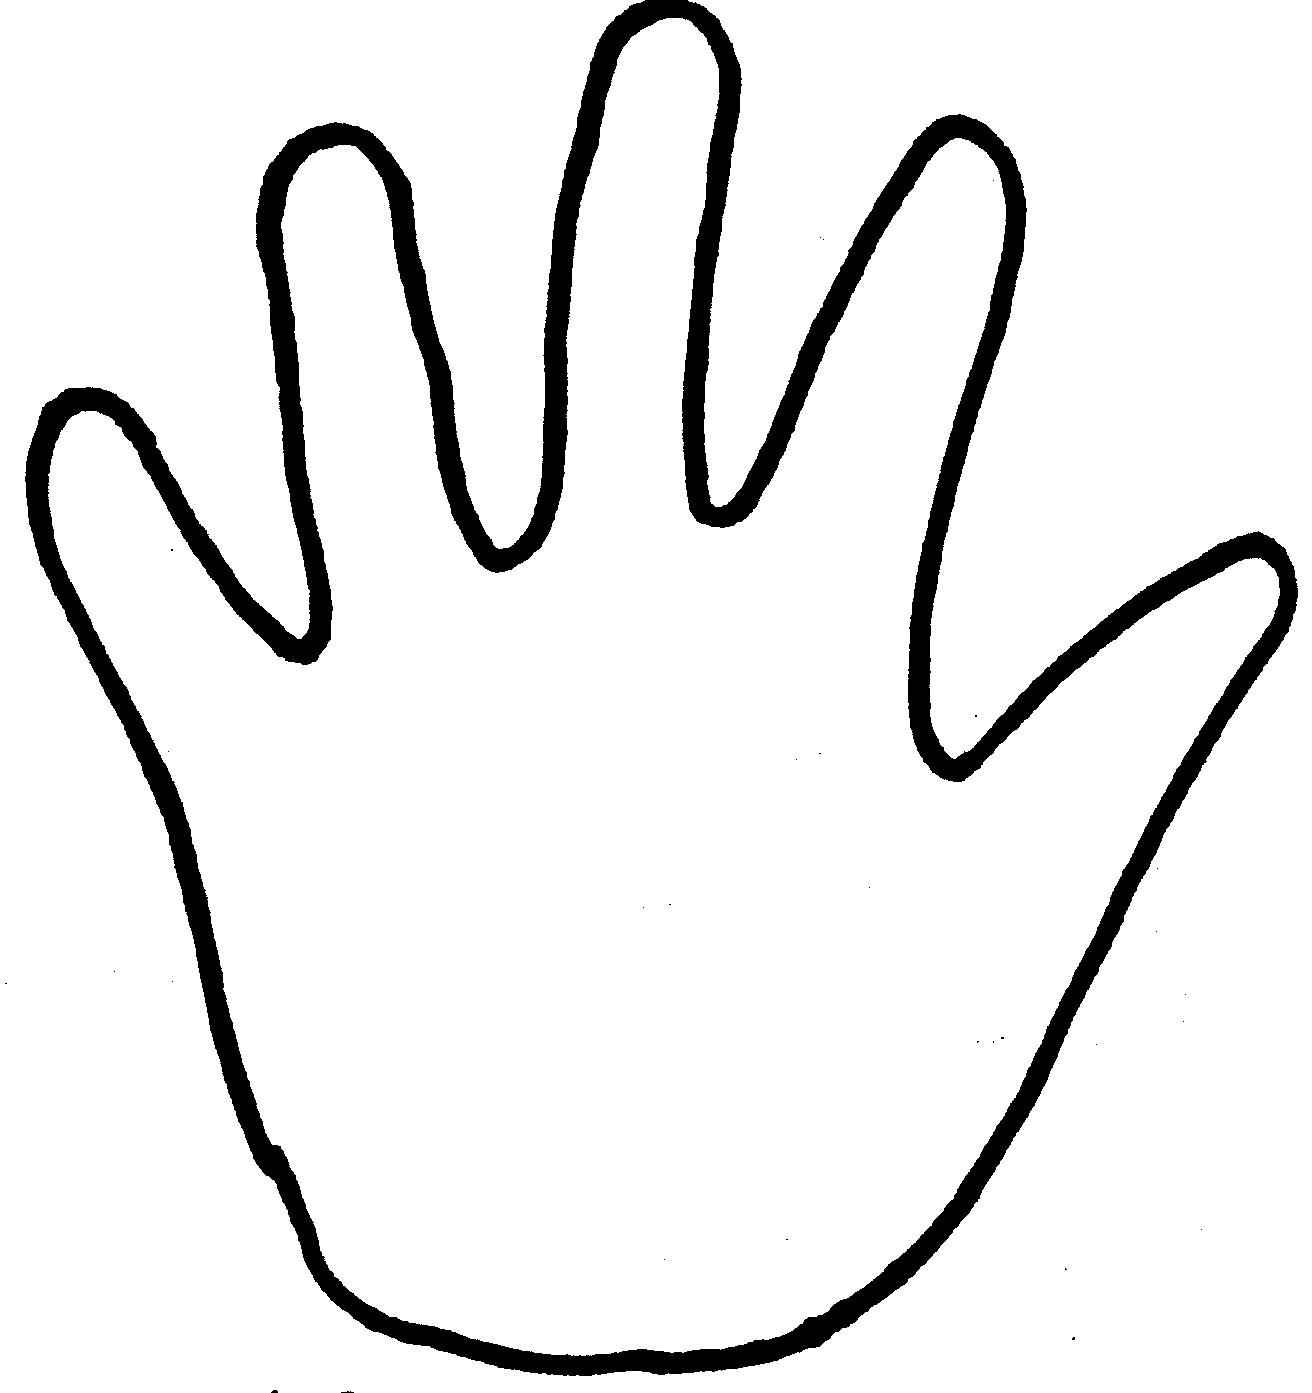 Childs Handprint | Free download best Childs Handprint on